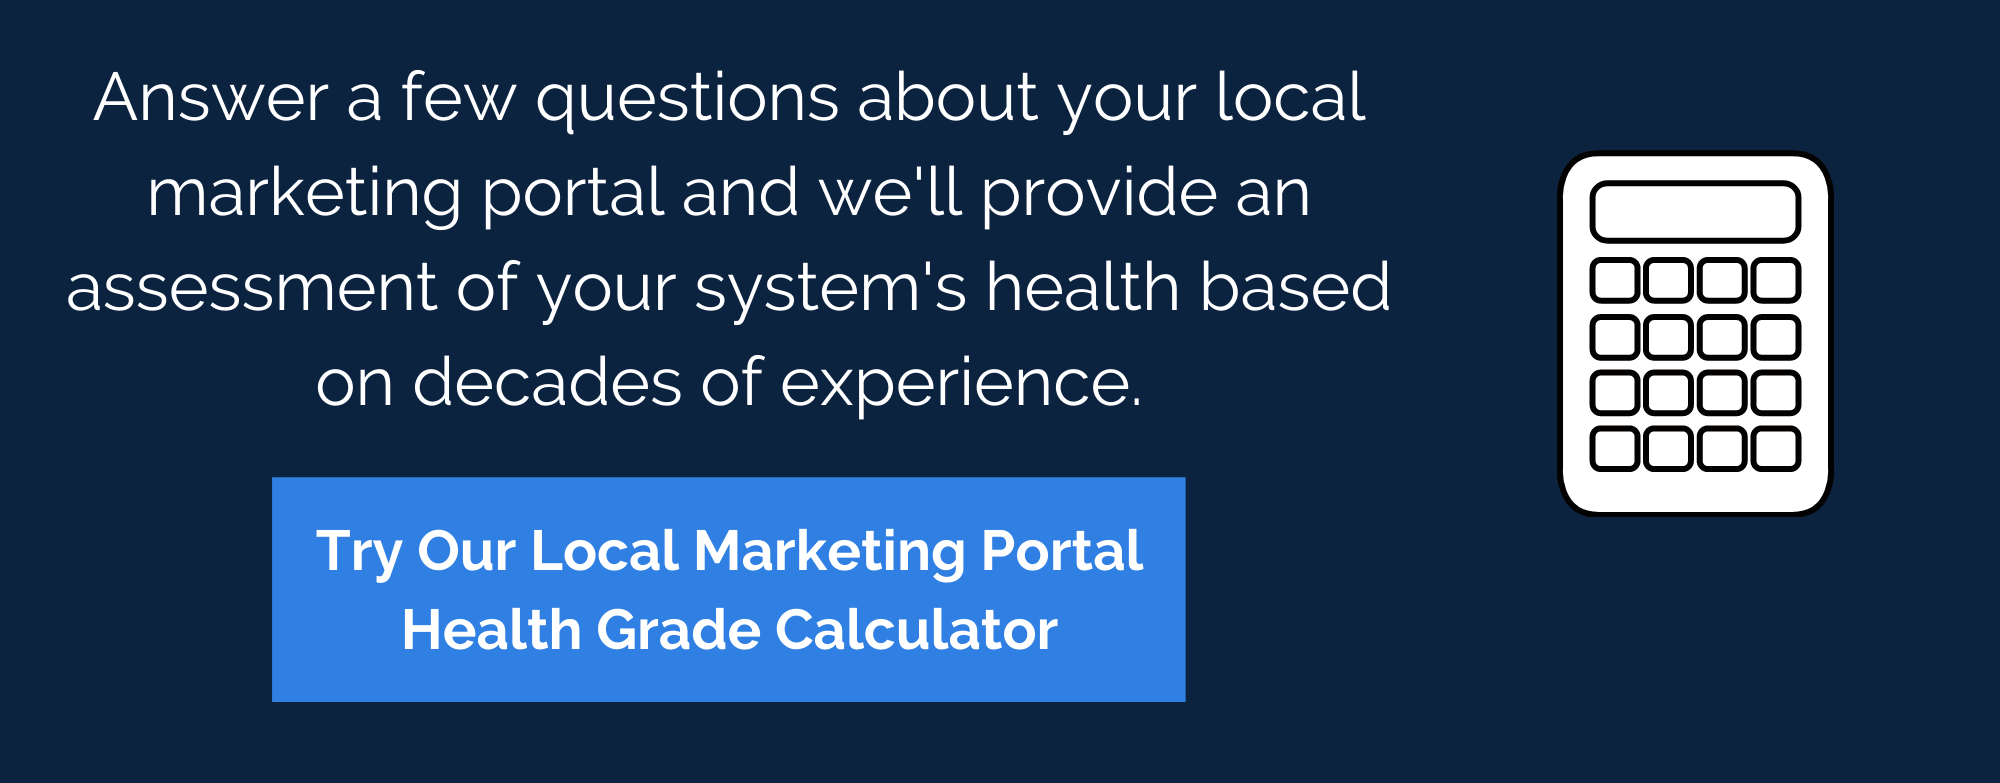 Local Marketing Portal Health Calculator